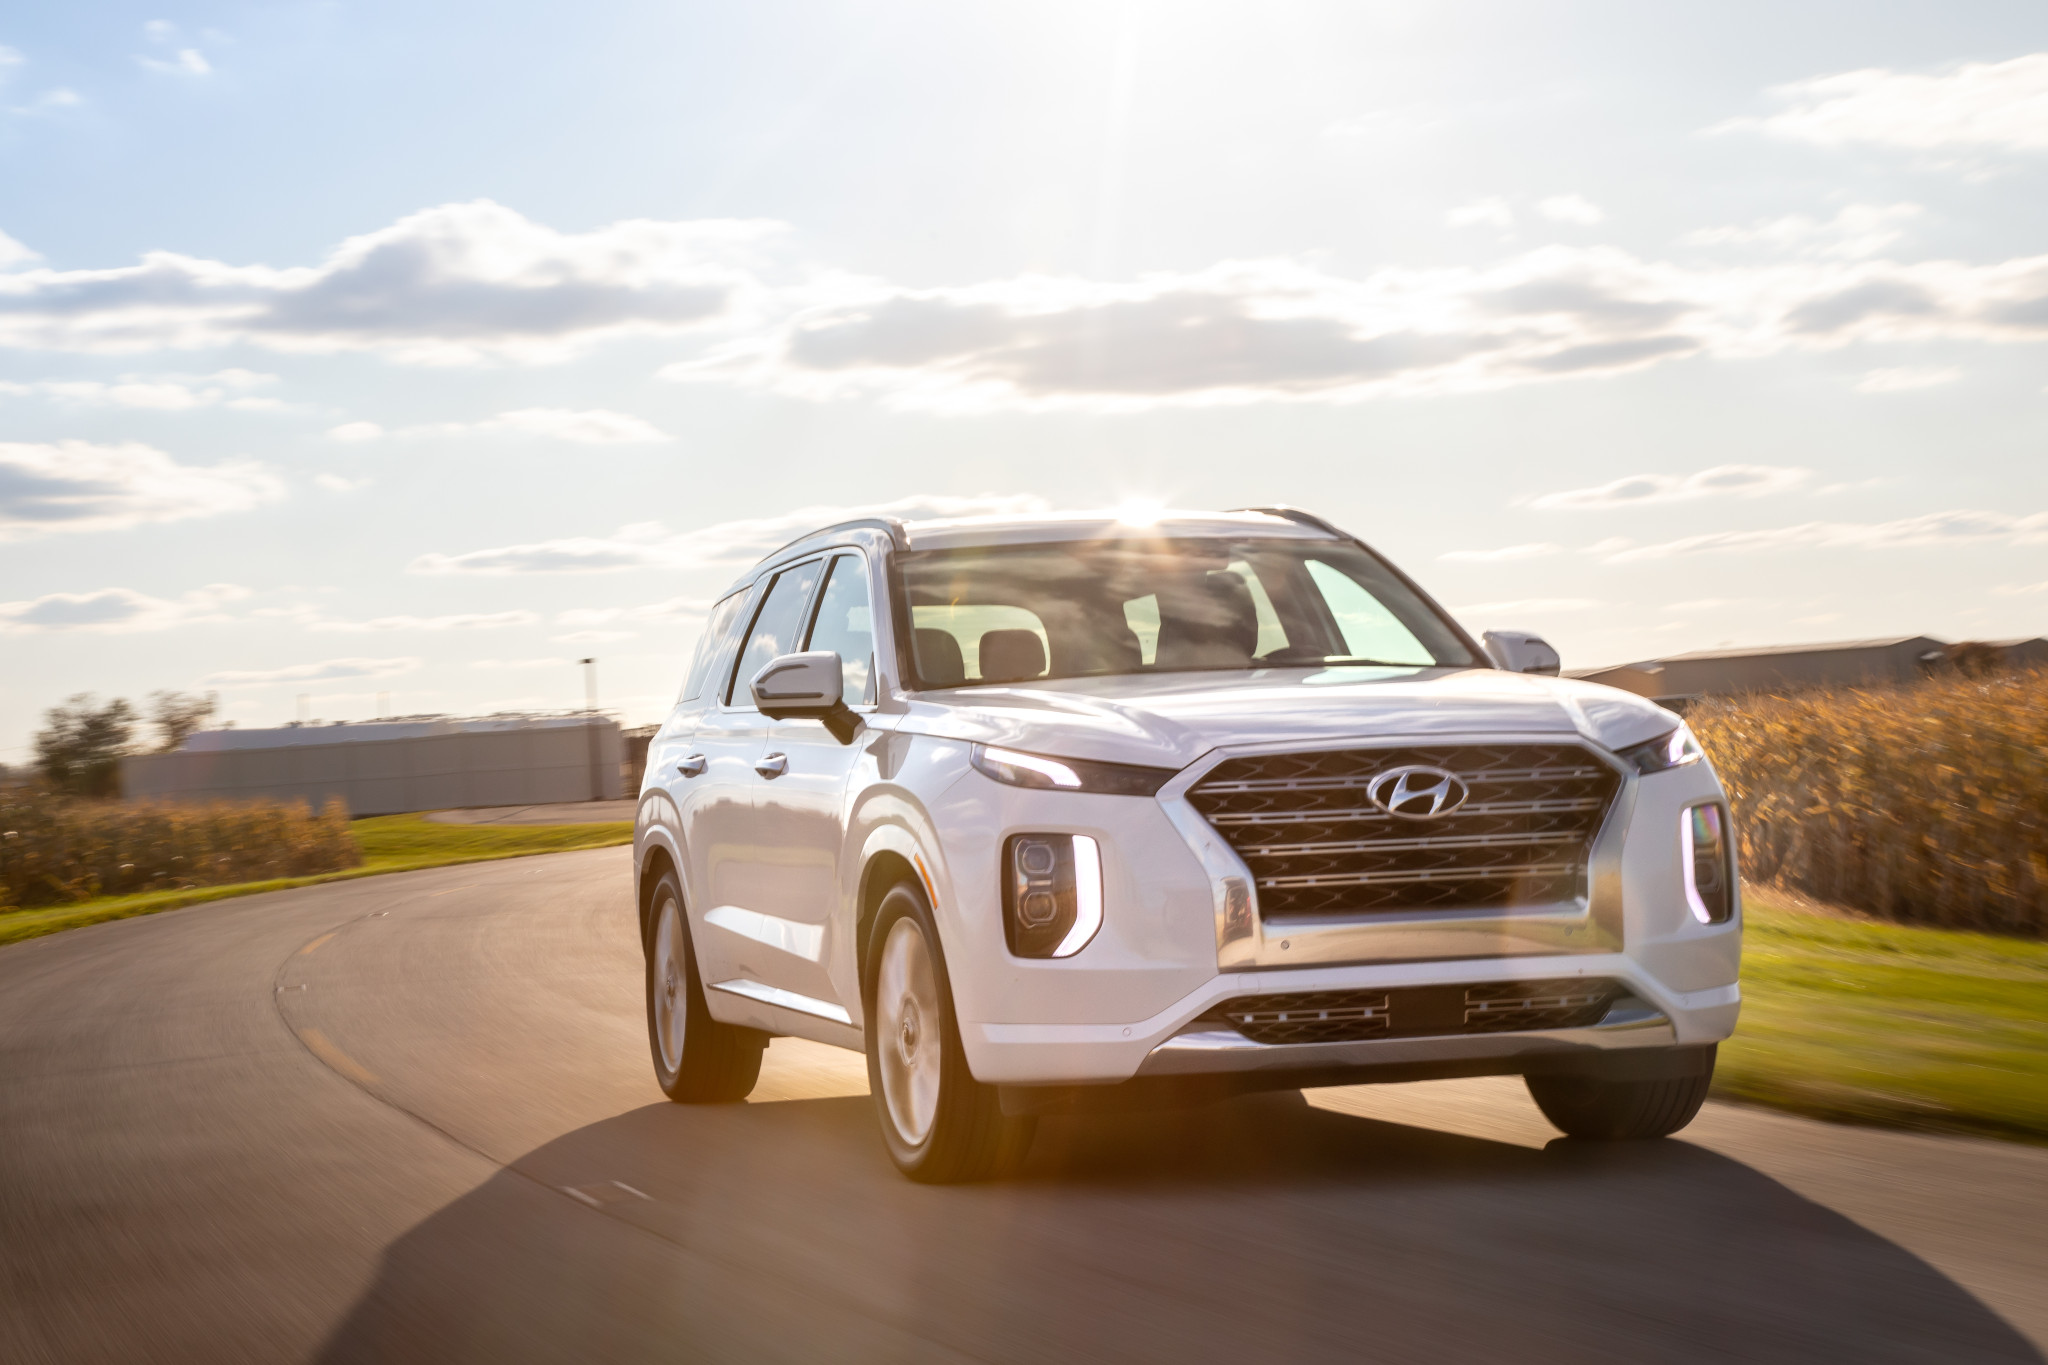 Best 3rd Row Suv 2020.We Have A Winner Why The 2020 Hyundai Palisade Is The Best